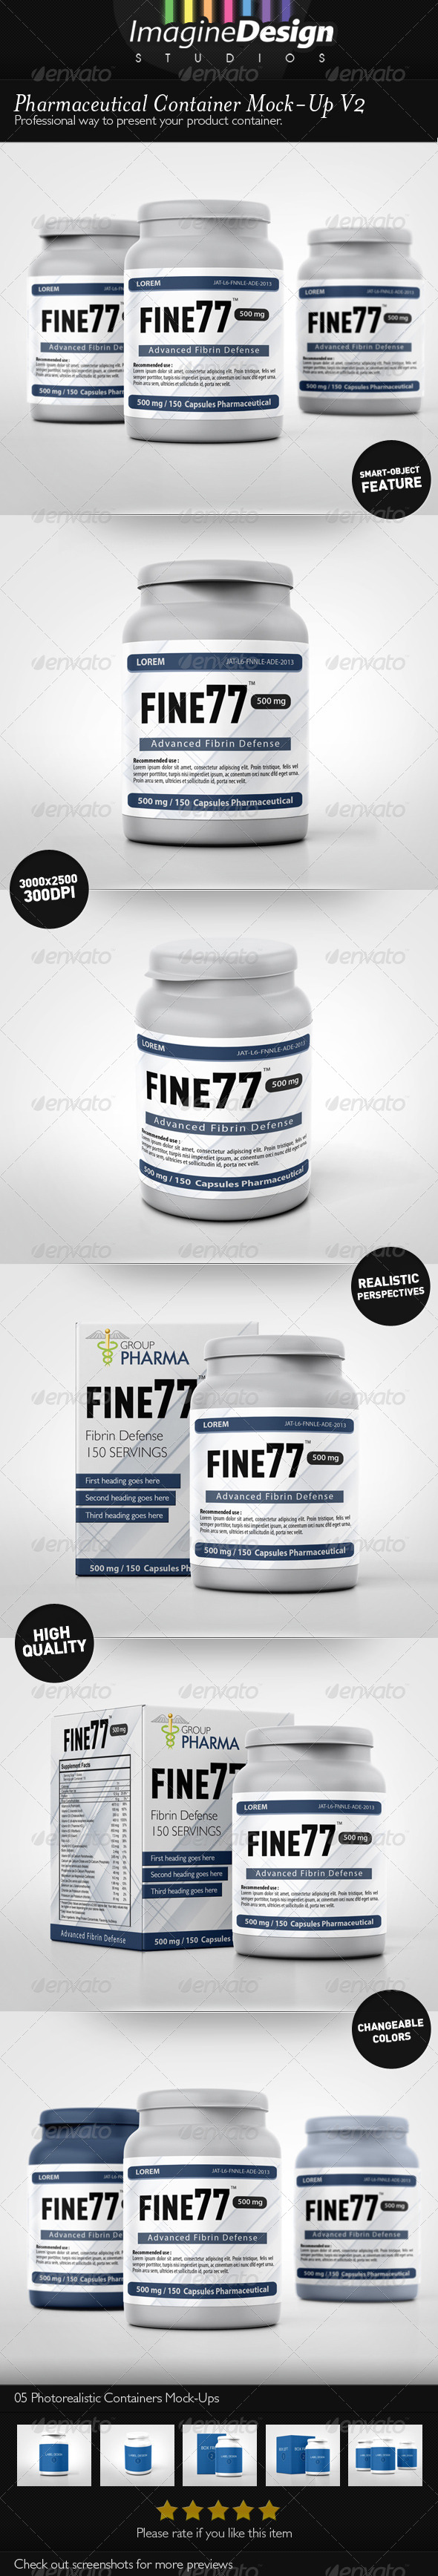 GraphicRiver Pharmaceutical Container Mock-Up V2 4310970